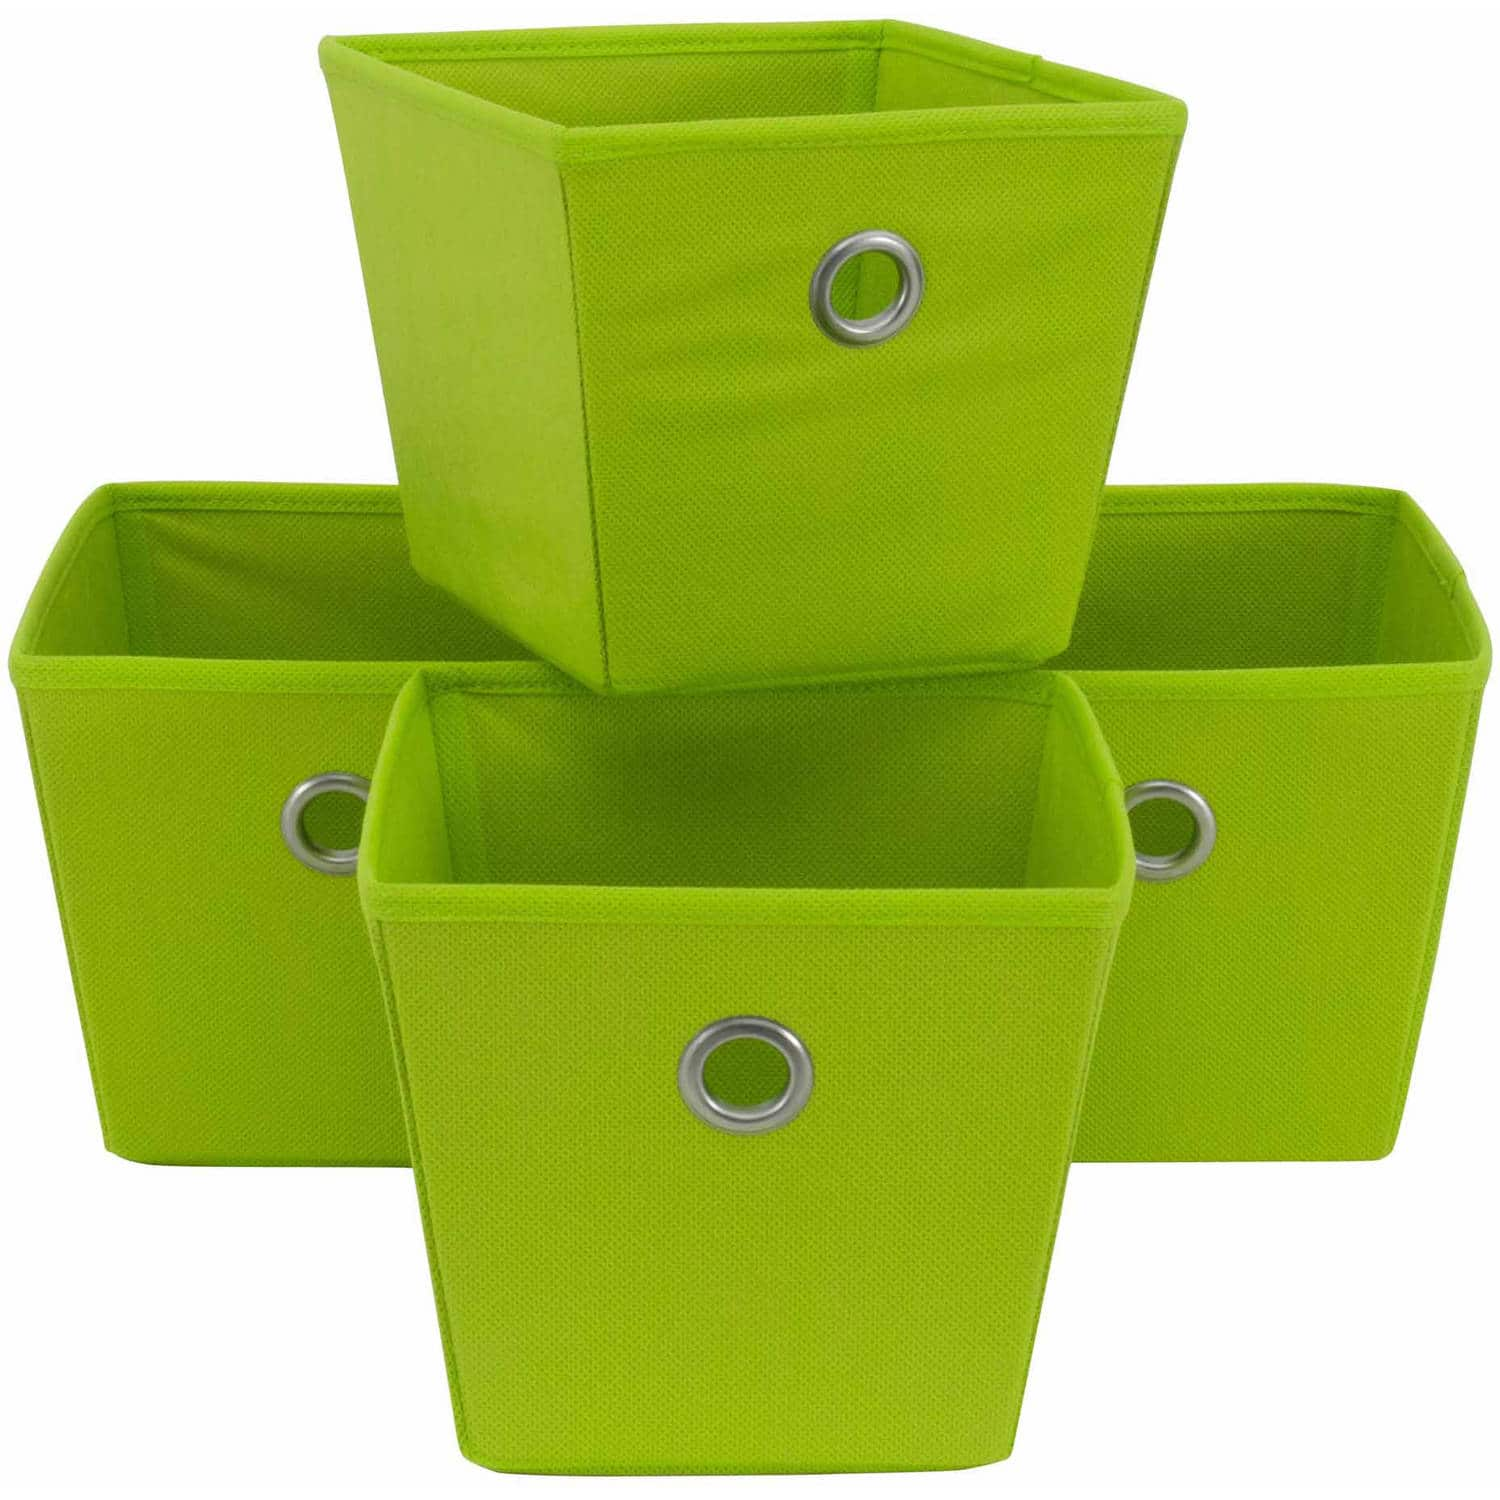 Mainstays Non-Woven Bins, 4-Pack $6.55 FS for pickup @Walmart $6.54